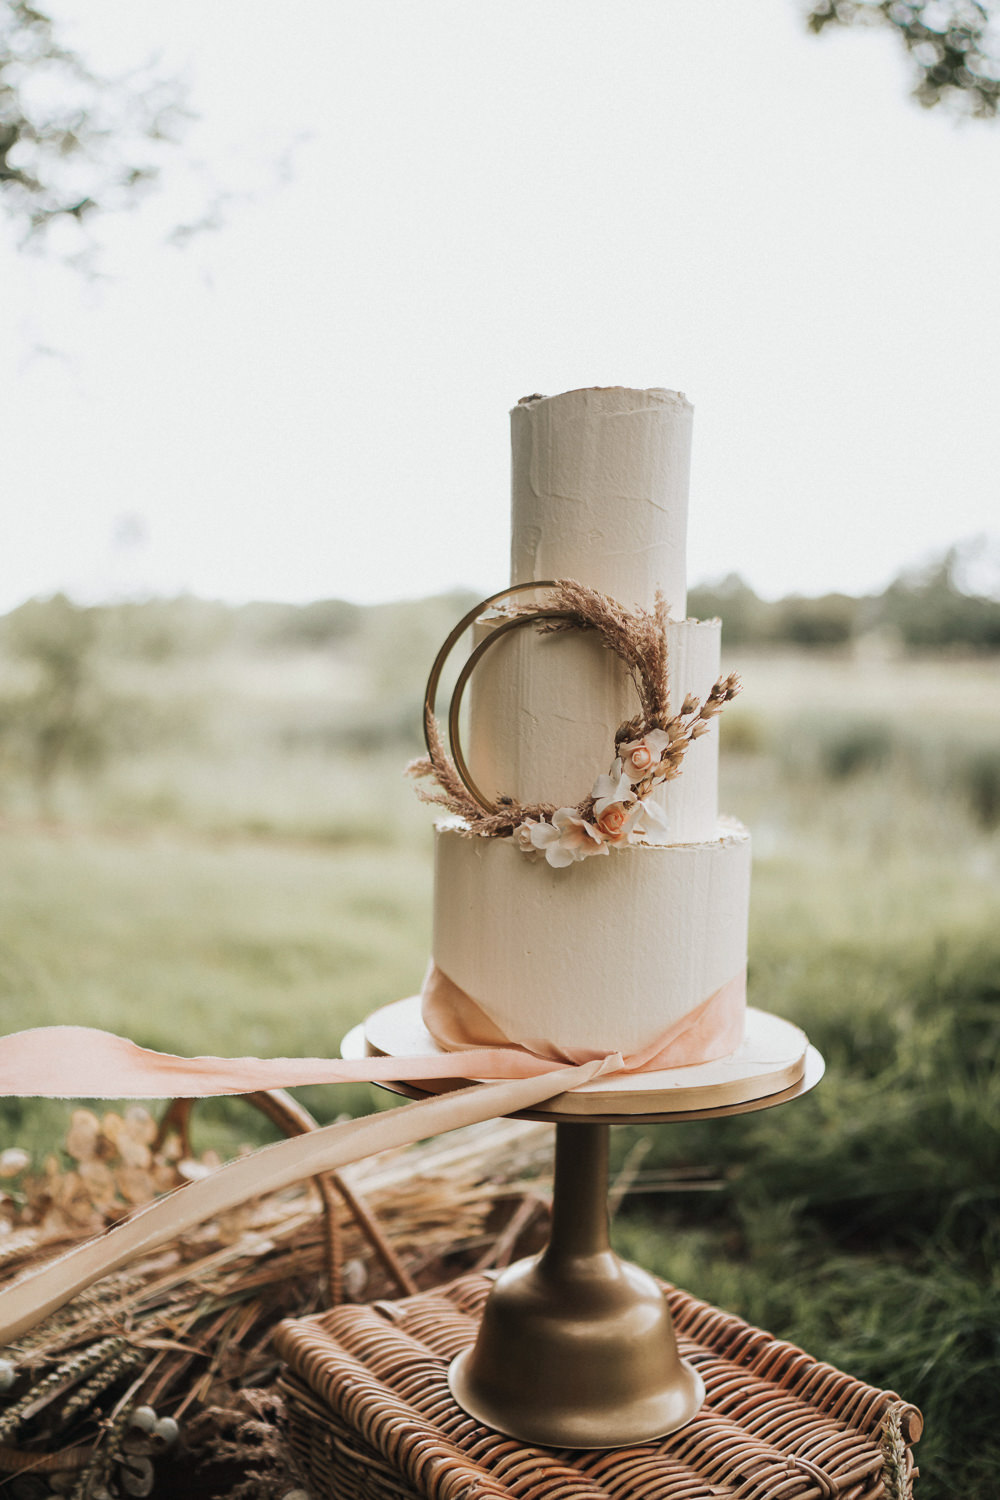 Cake Iced Buttercream Hoop Dried Flowers Florals Wheat Grass Grasses Ribbon Naked Tipi Wedding Ideas Holly Rose Stones